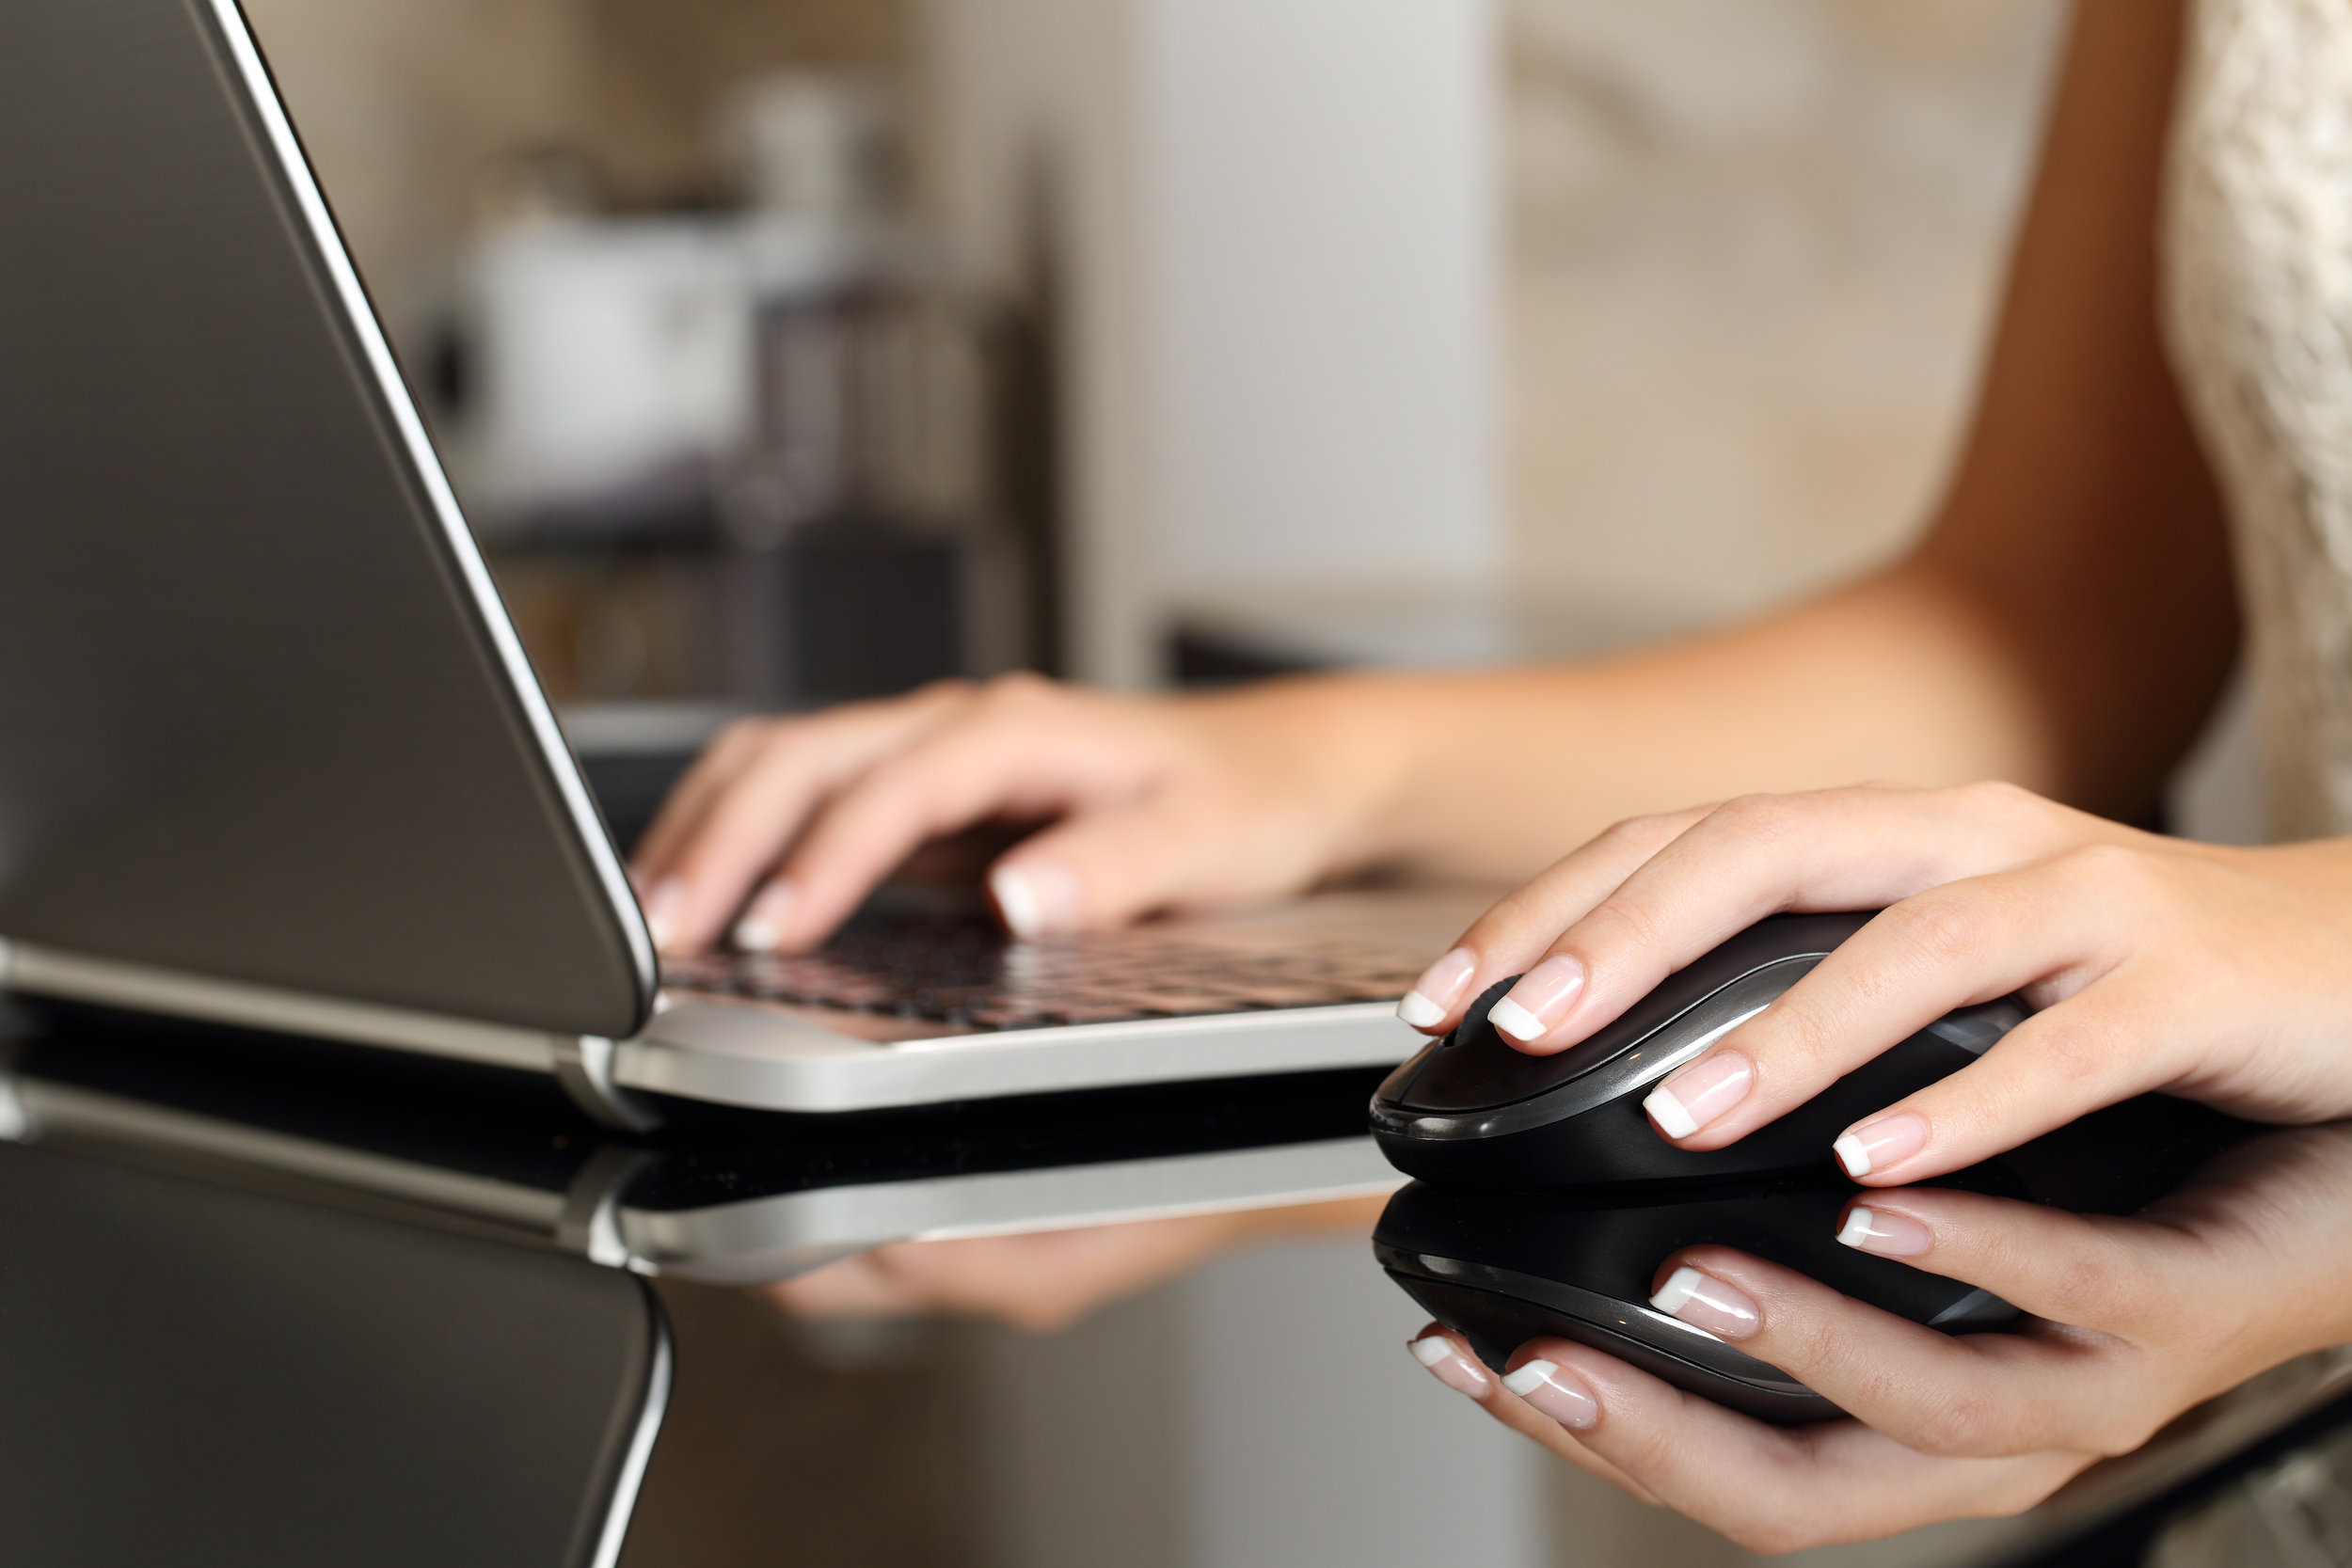 Business woman hands working with a laptop and a mouse.jpg